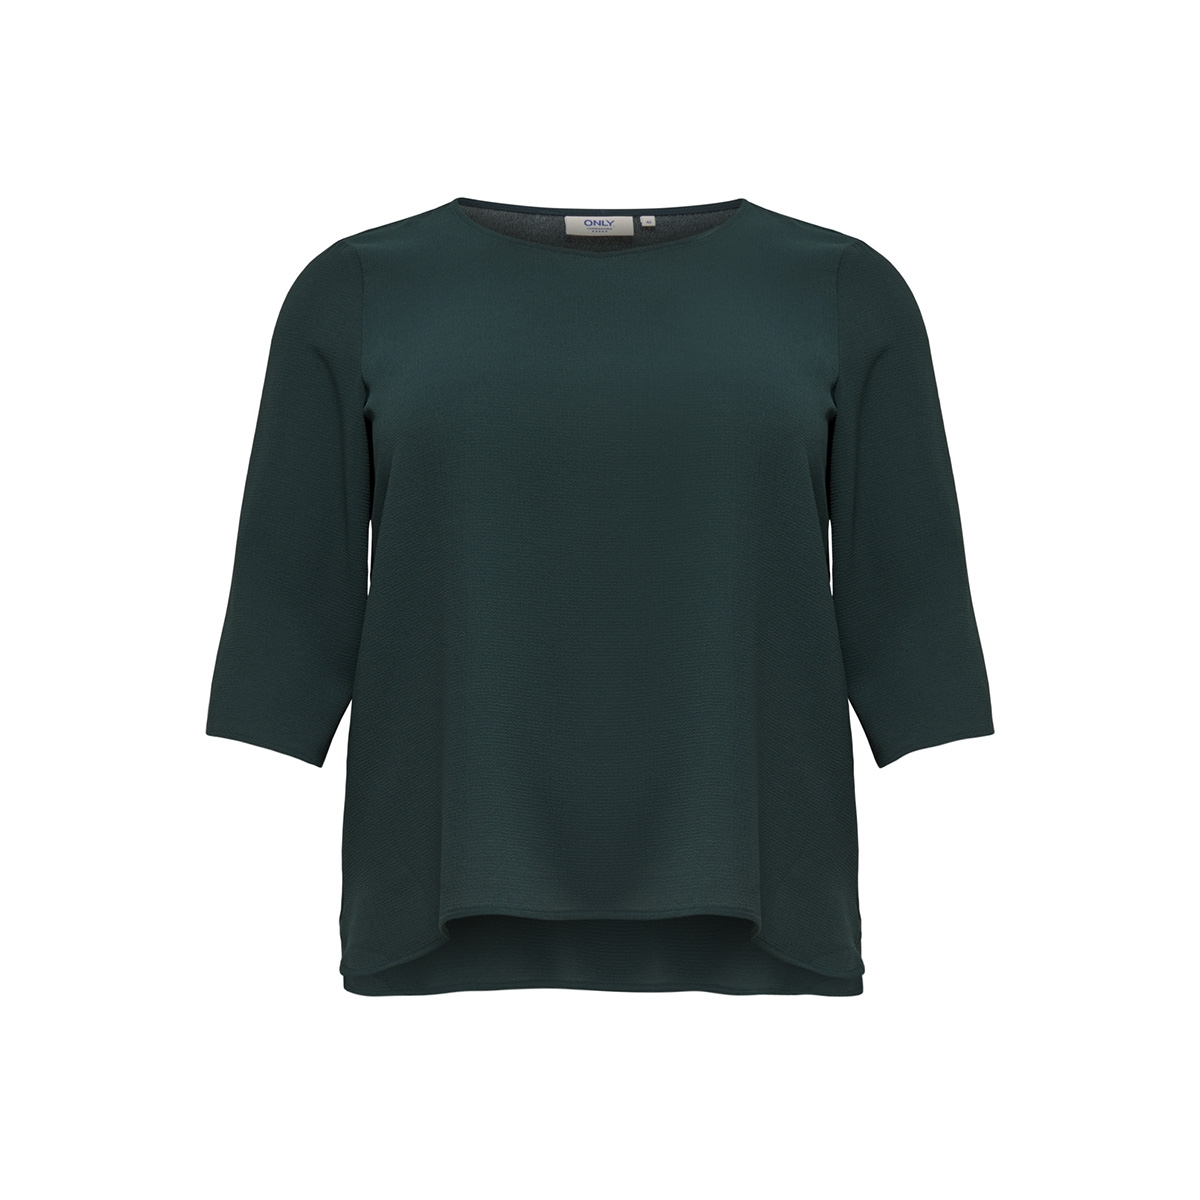 carlux cecilia 3/4 top solid 15170871 only carmakoma t-shirt green gables